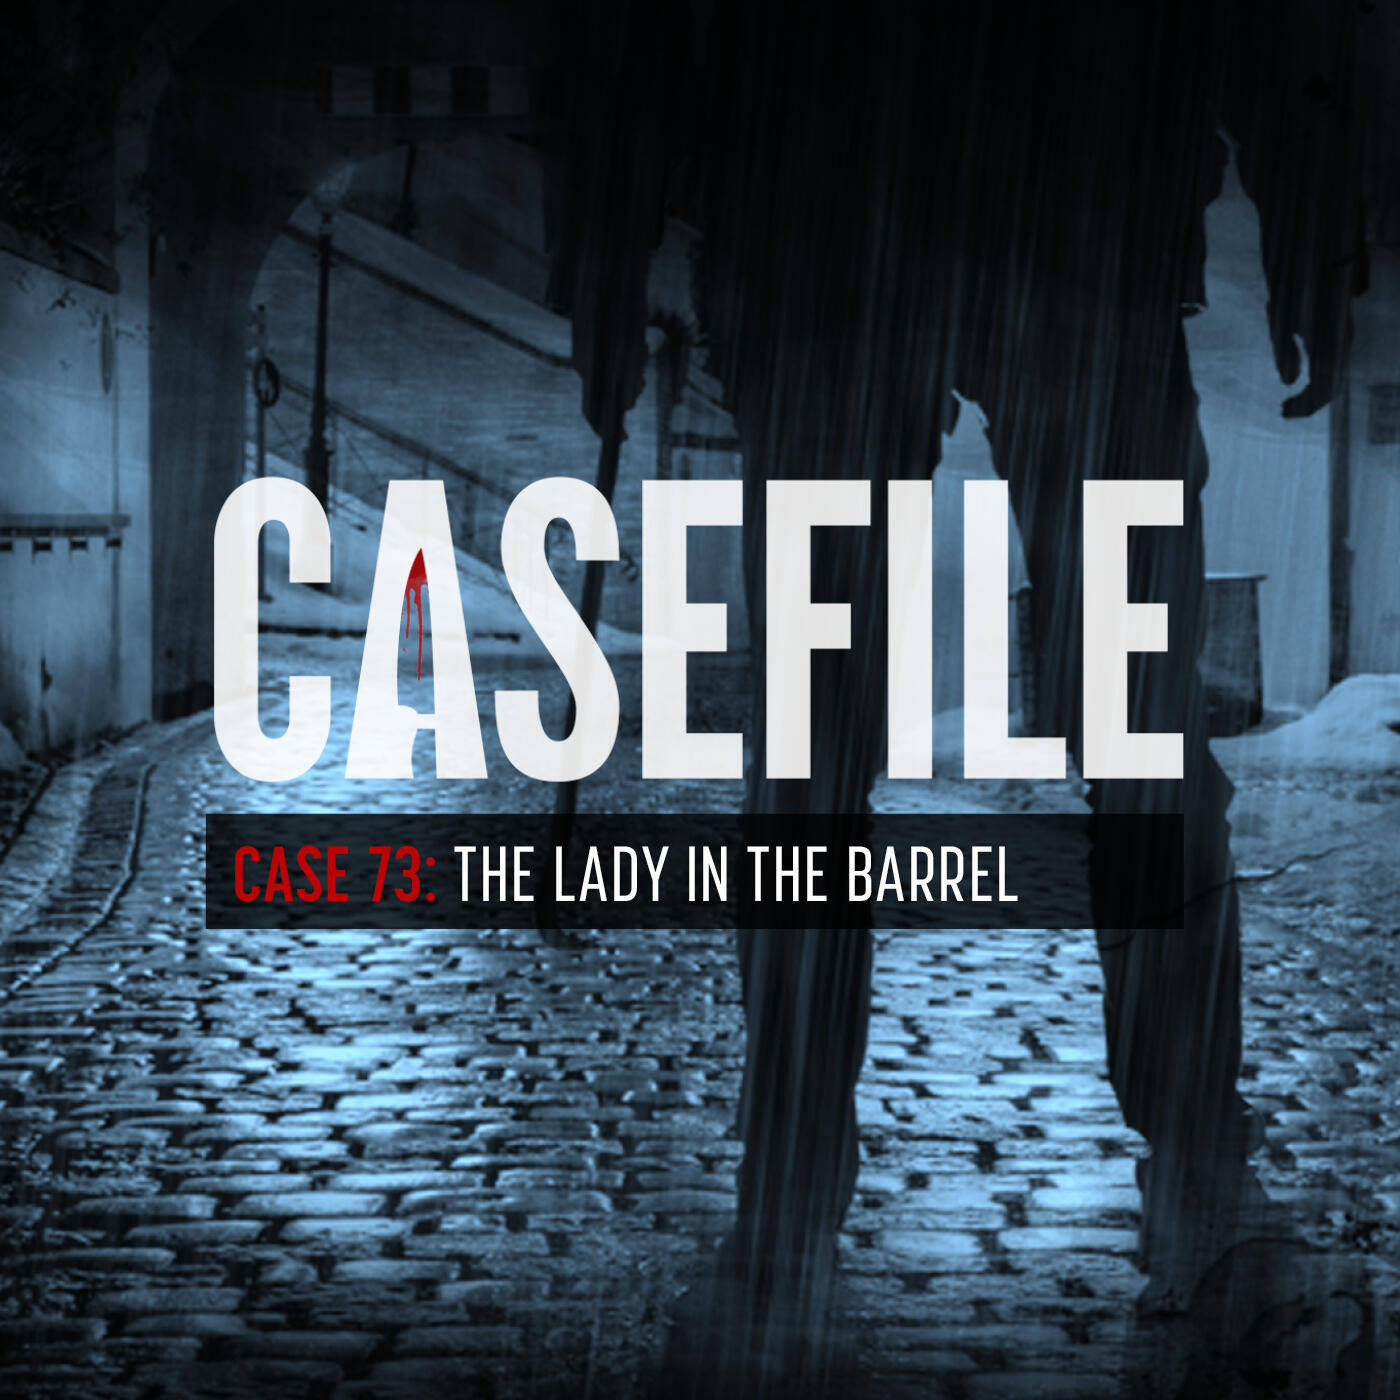 Case 73: The Lady in the Barrel